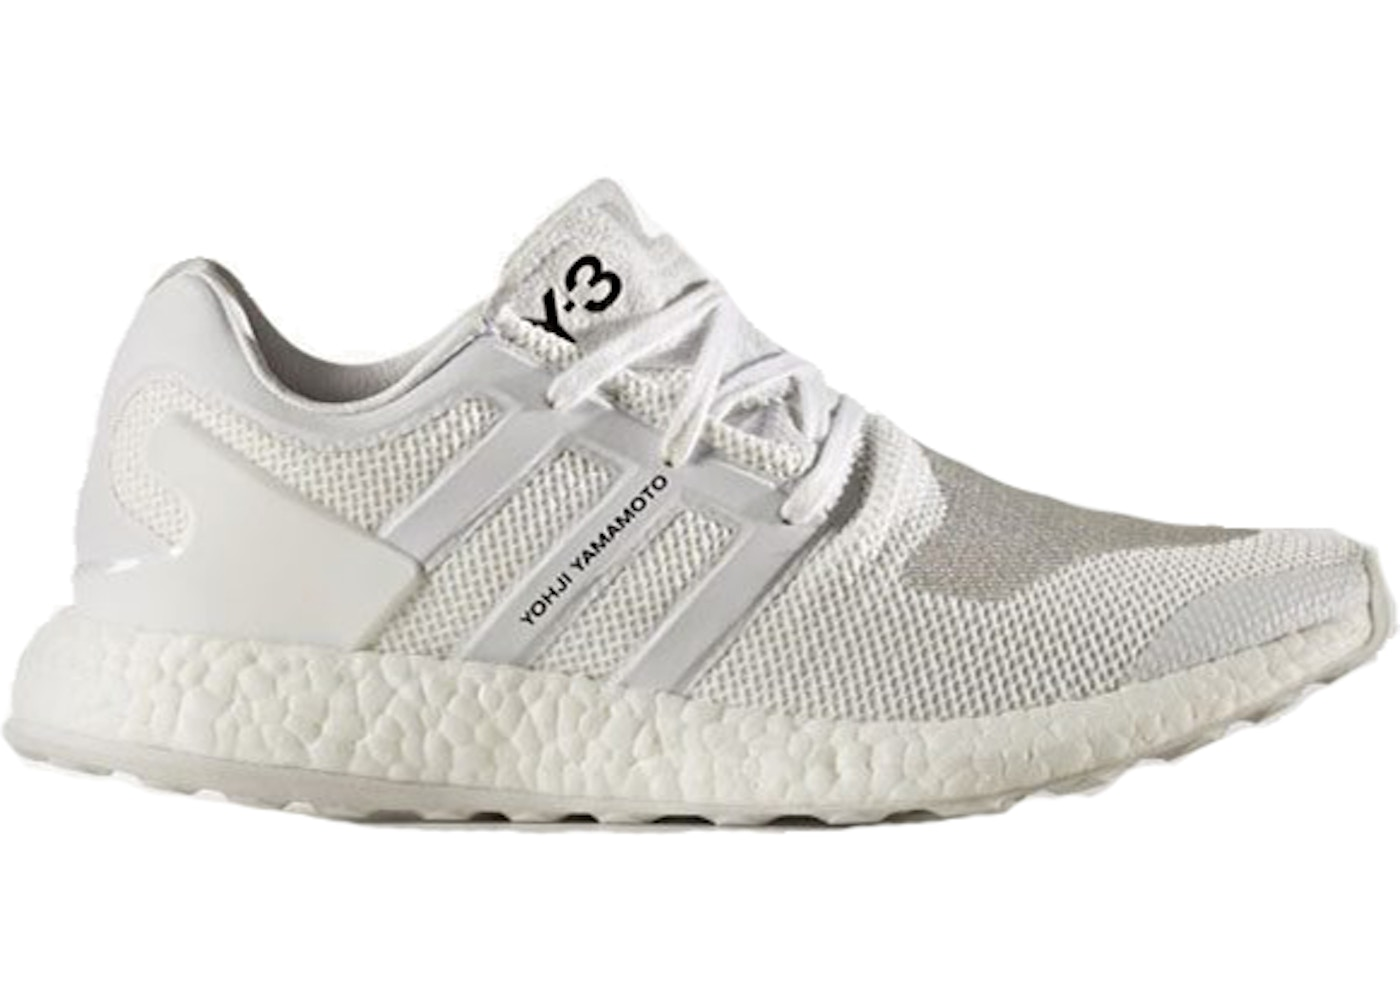 6b9b60ce4 Y-3 Pureboost Triple White - BY8955